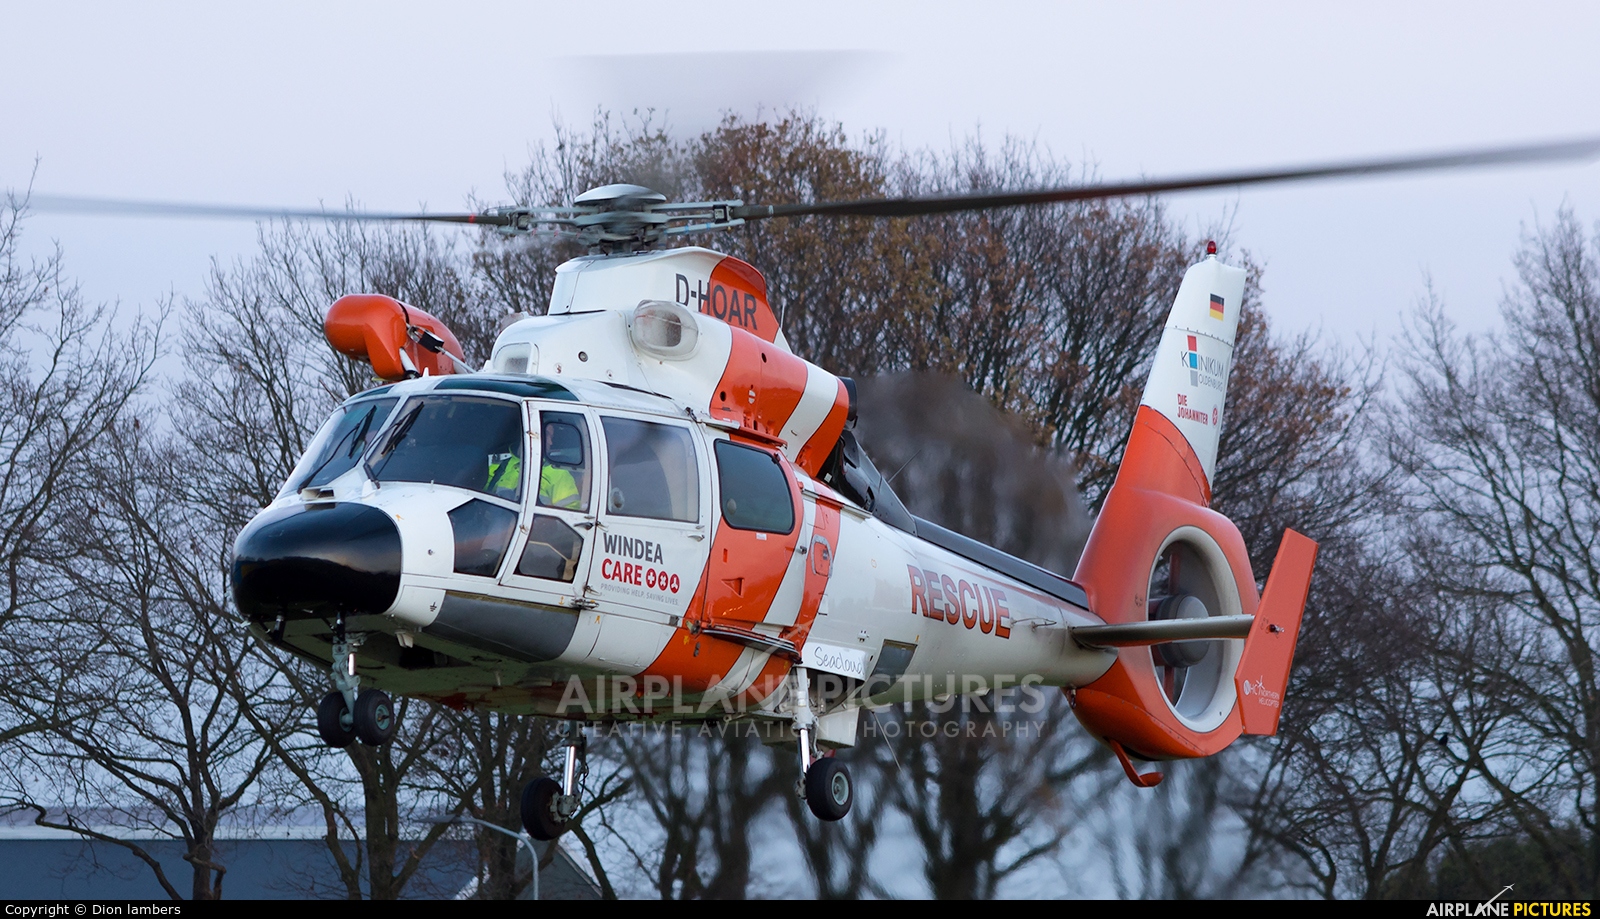 Northern Helicopters D HOAR Aircraft At Heli Port Emmen